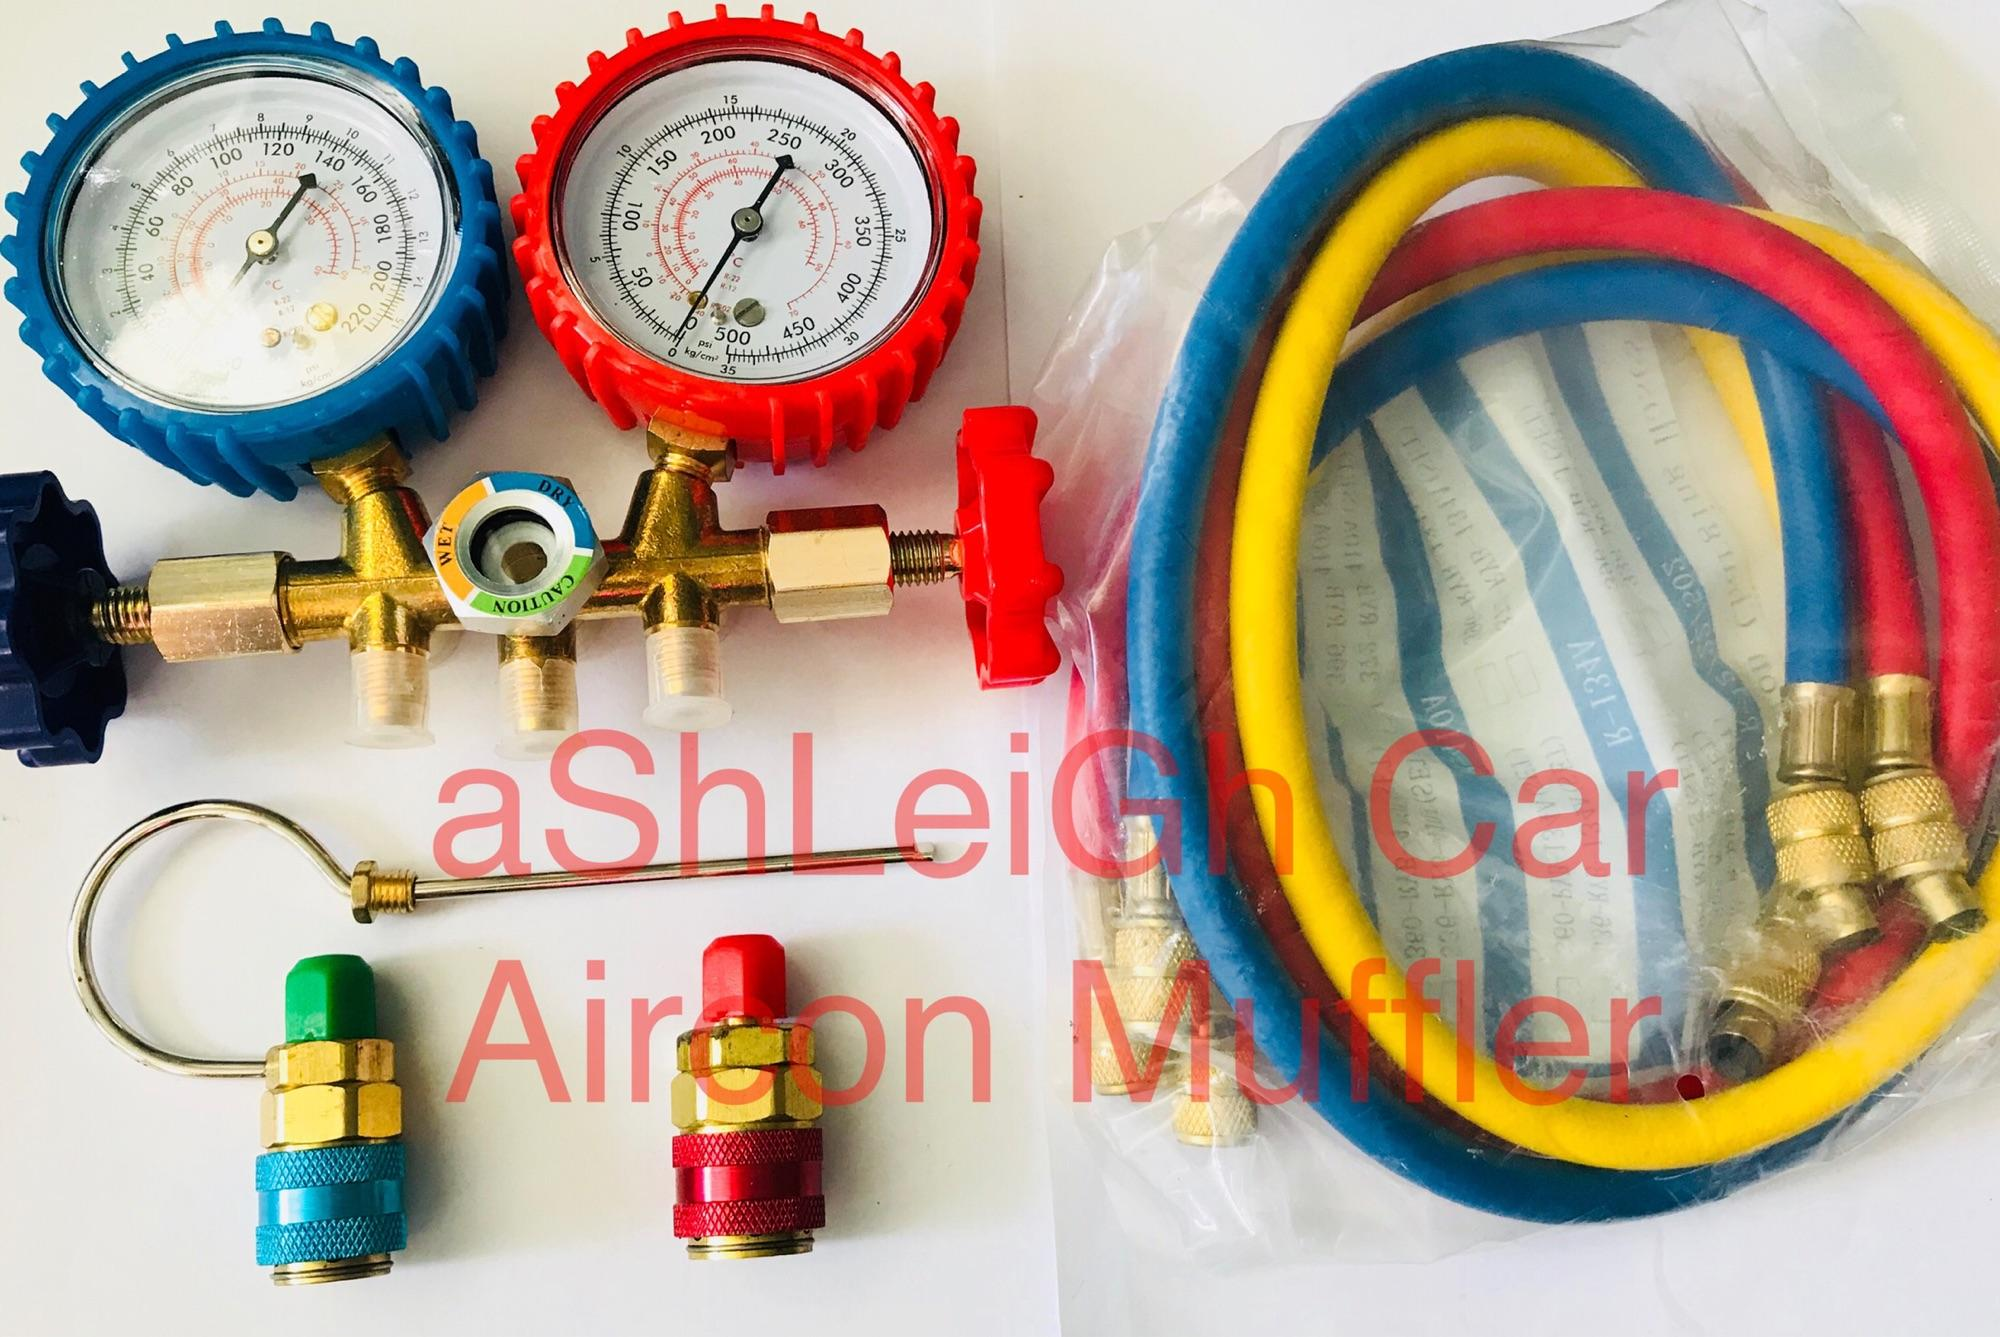 Car Cooling System For Sale Auto Cooler Online Brands Prices Stc 1000 Temperature Controller Wiring Also 2005 Honda Civic Aircon Manifold Gauge W Pair Coupler R134 R22 Heavy Duty Set 134a